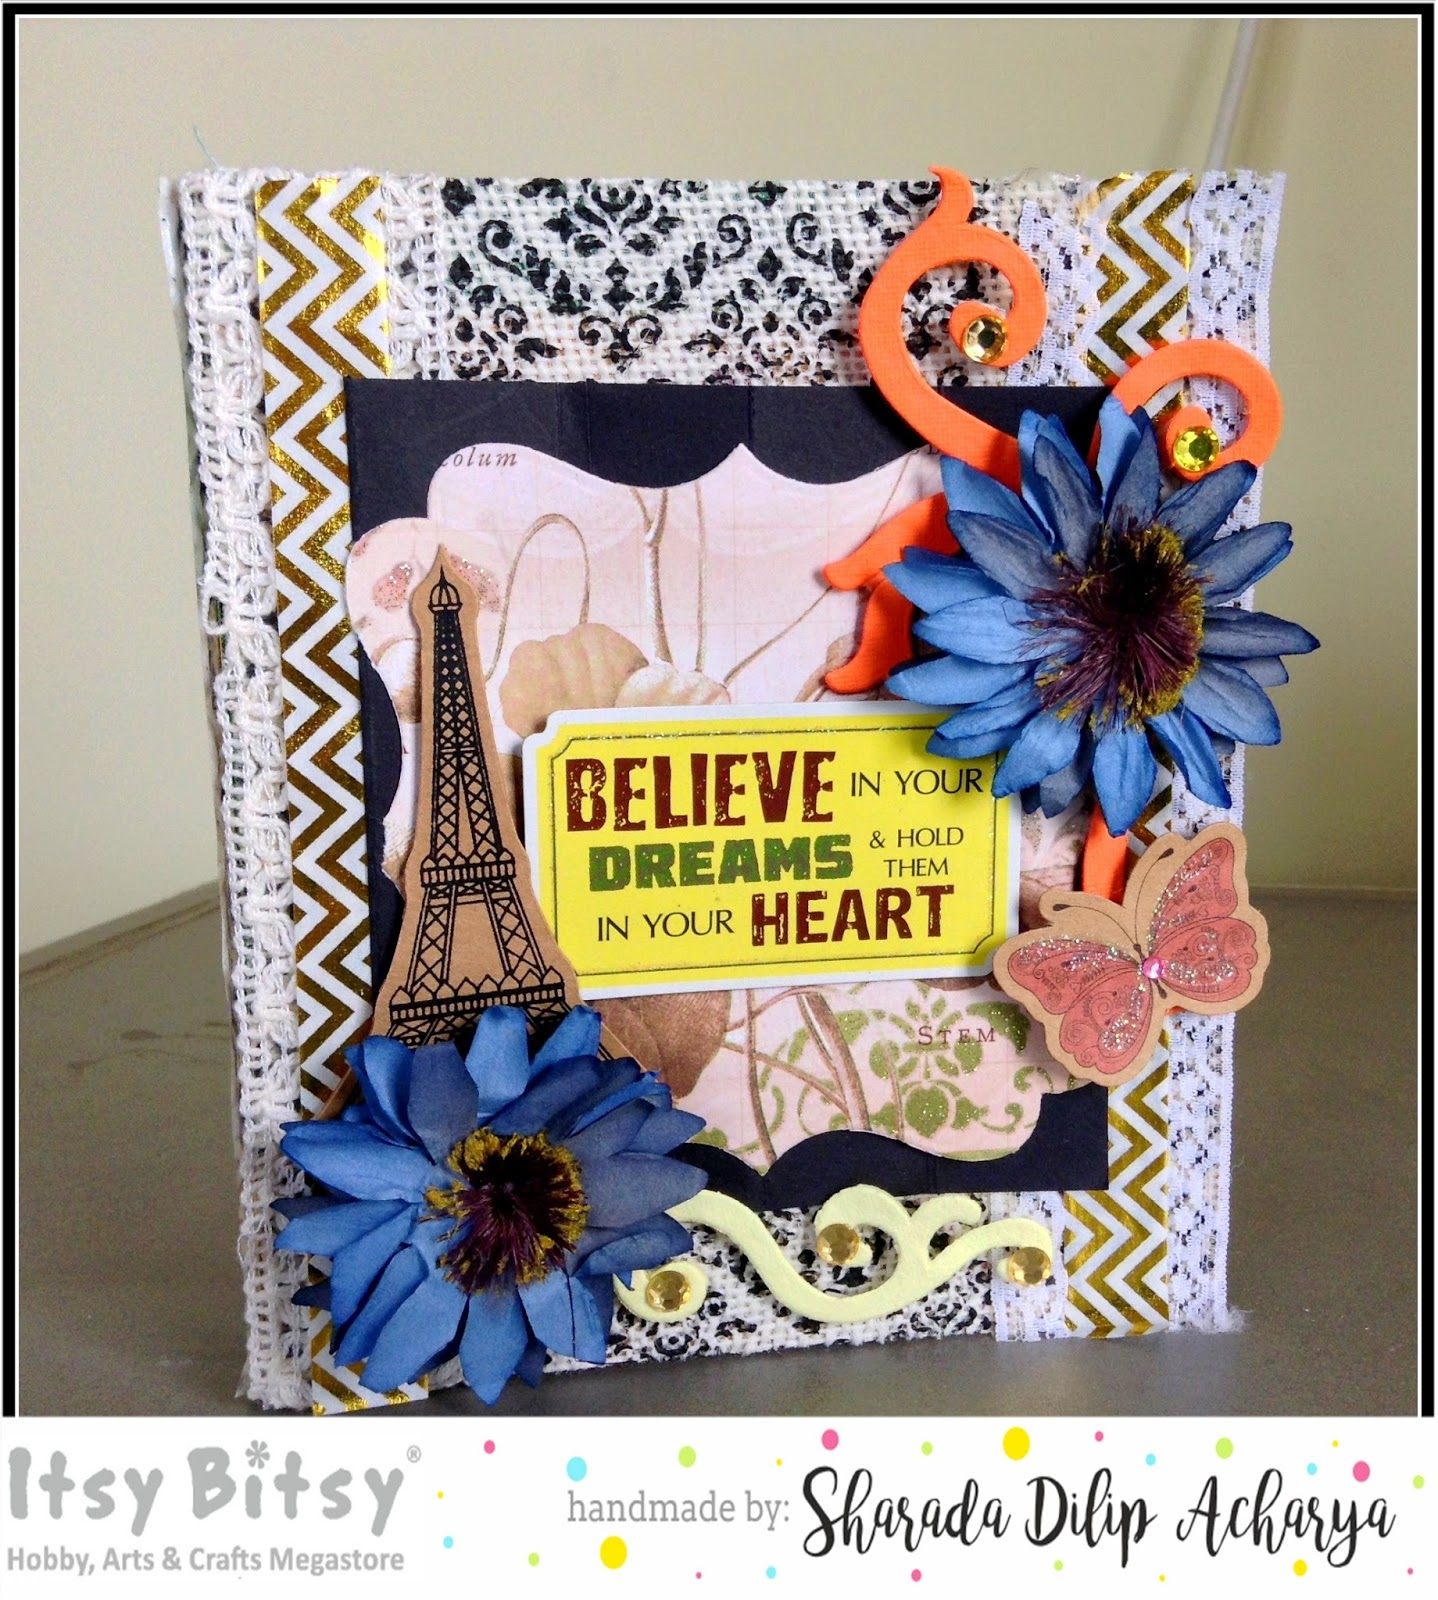 create your own cereal box ideal vistalist co